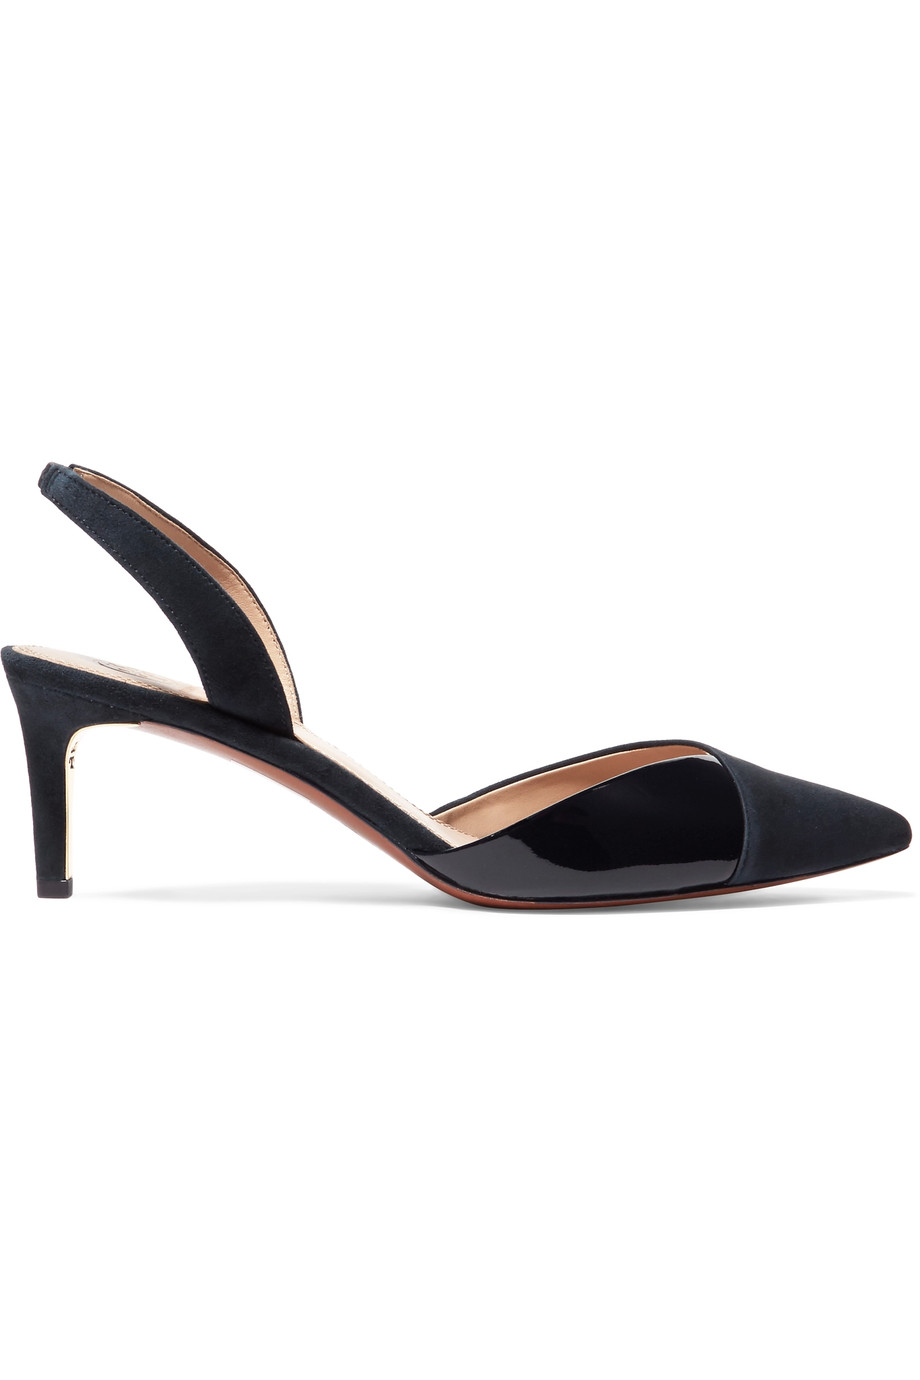 TORY BURCH Ramie Suede And Patent-Leather Slingback Pumps